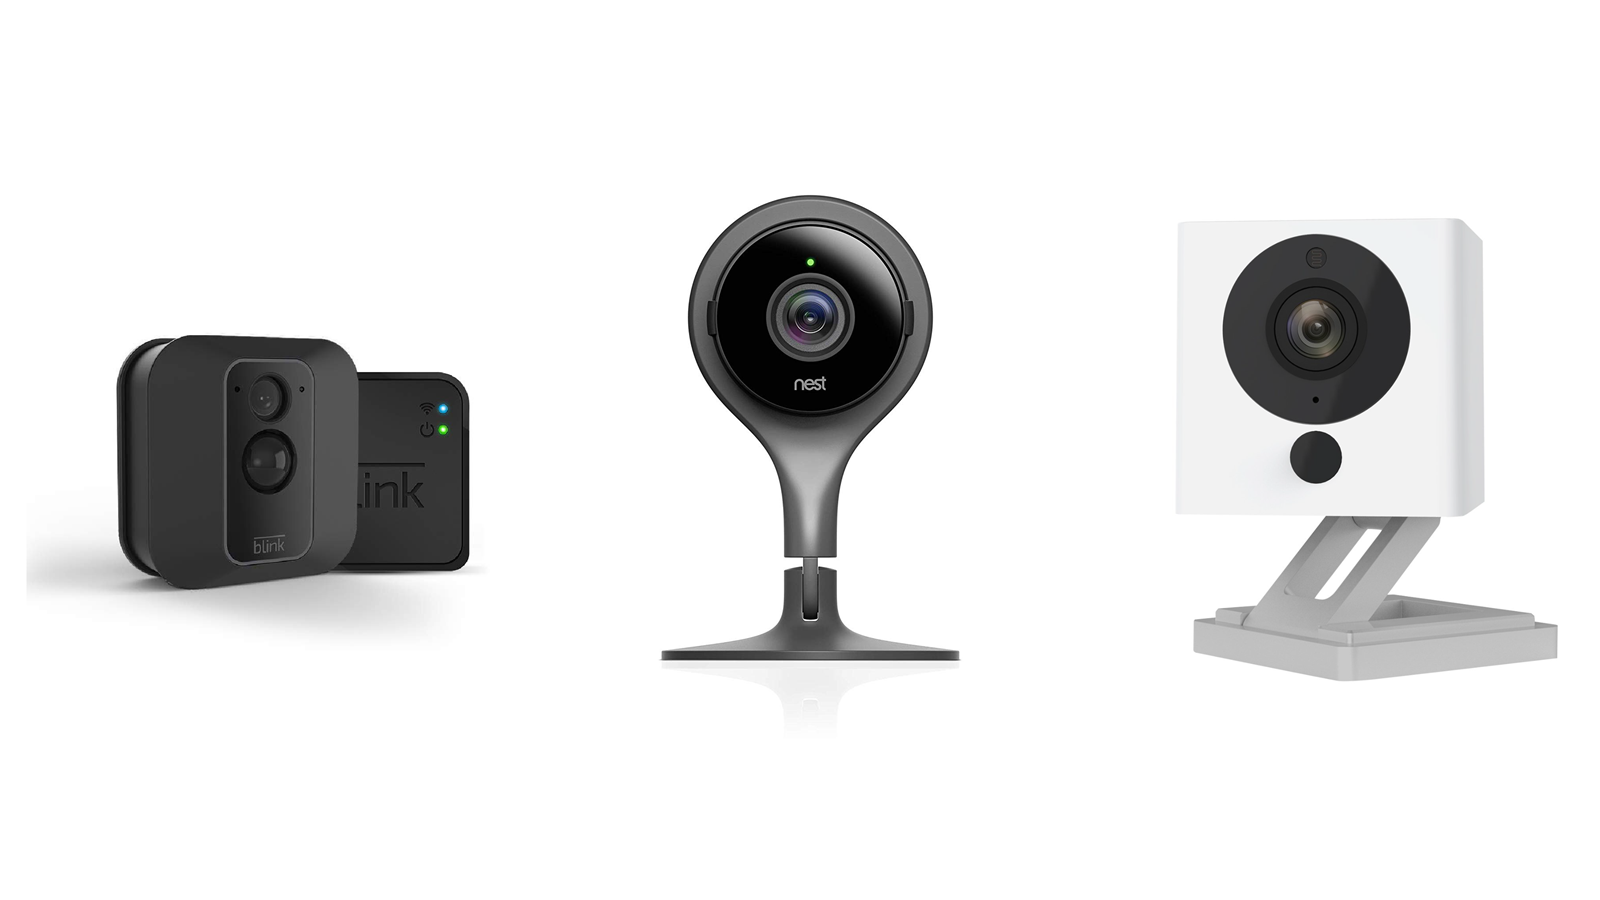 A Blink, Nest, and Wyze camera side by side.